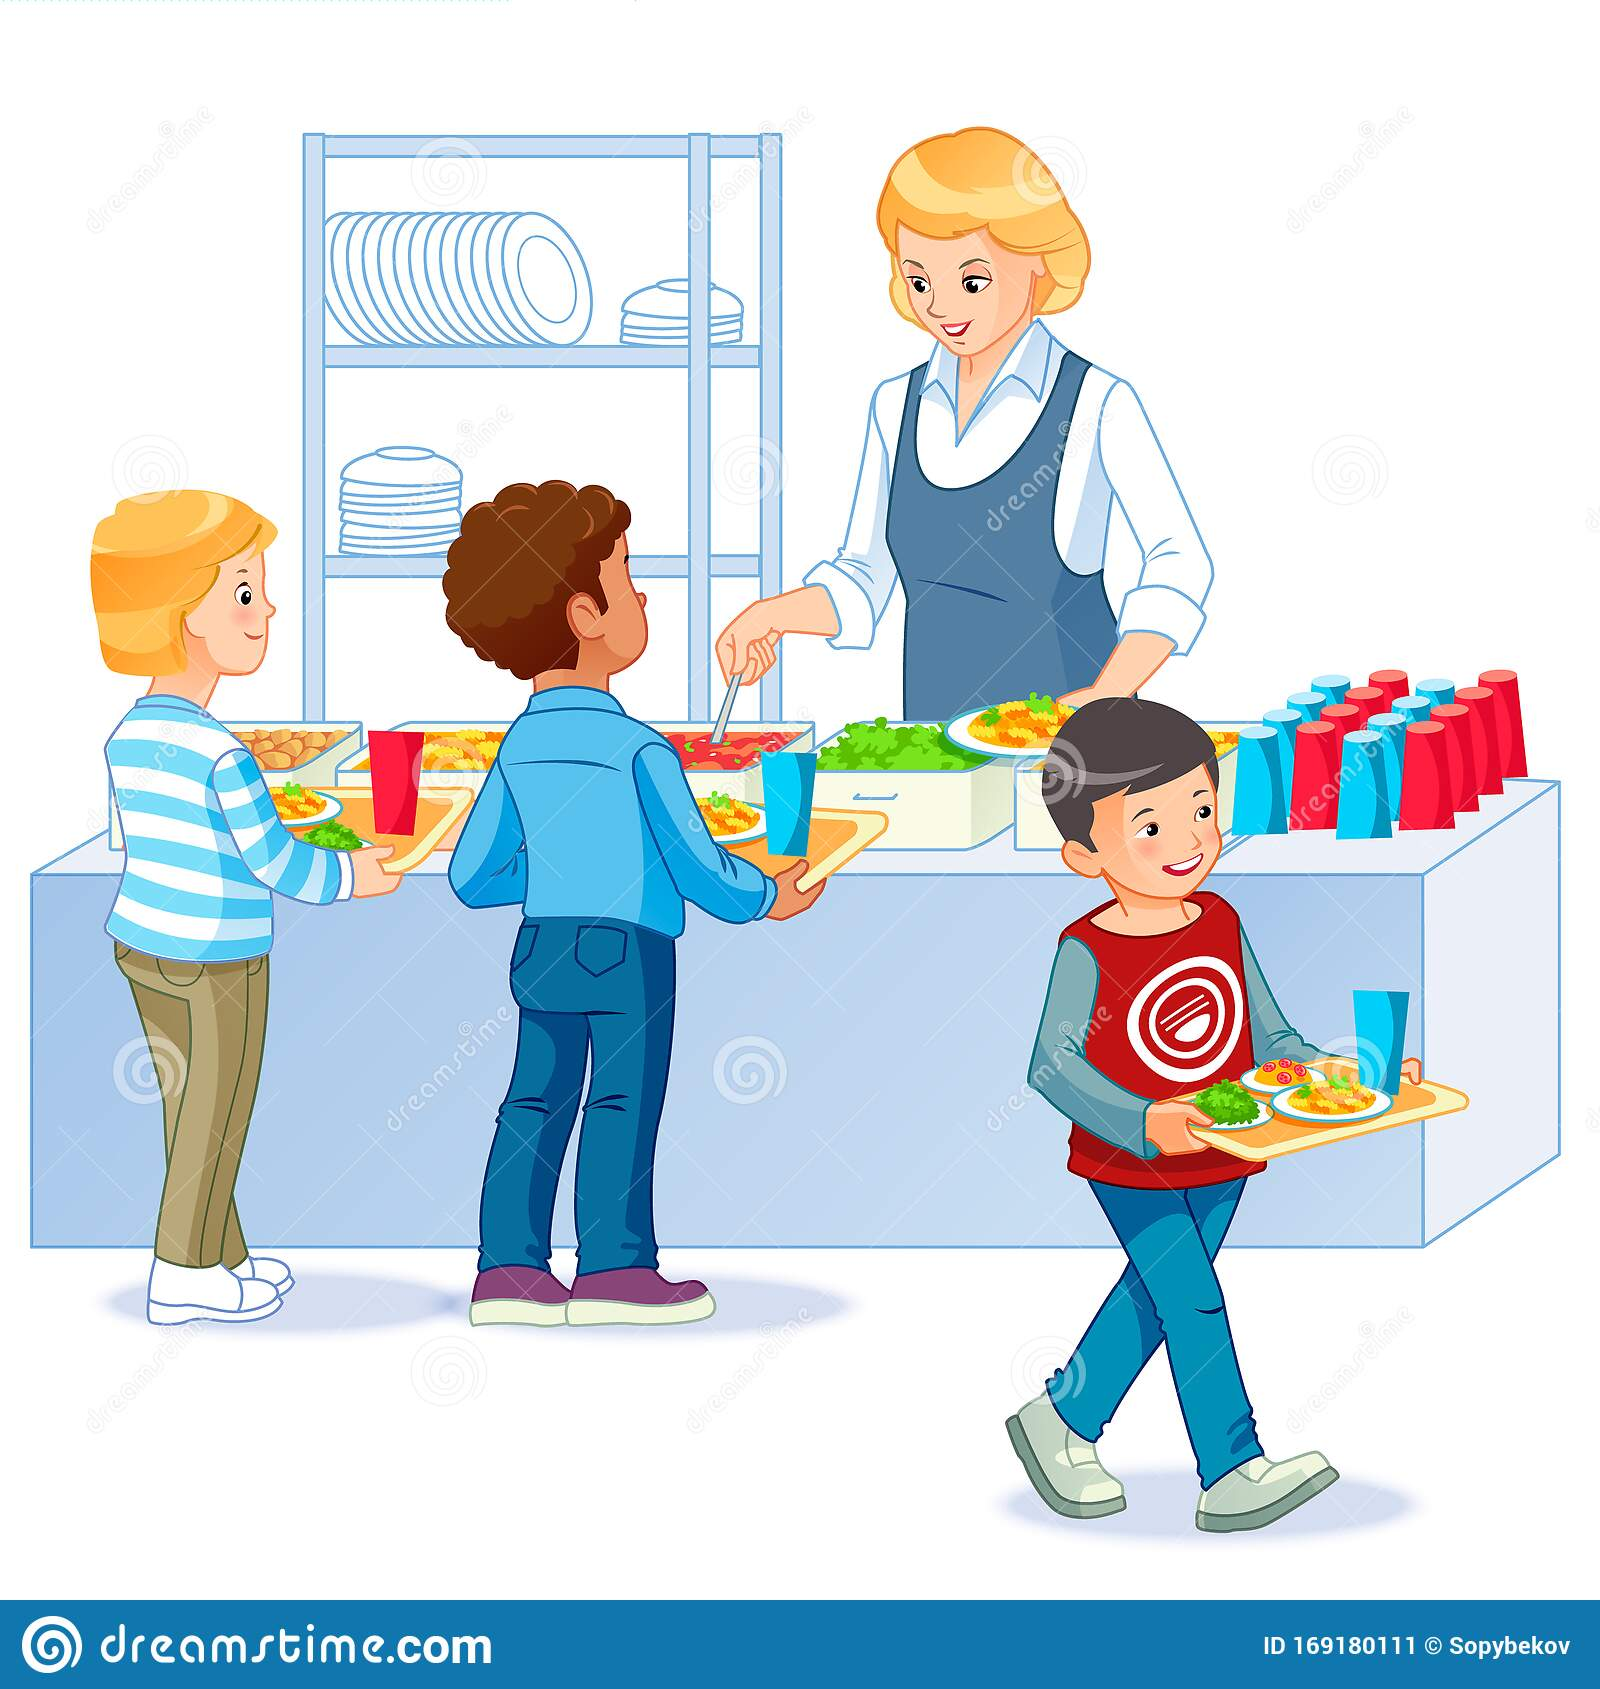 Canteen Buying Stock Illustrations 27 Canteen Buying Stock Illustrations Vectors Clipart Dreamstime